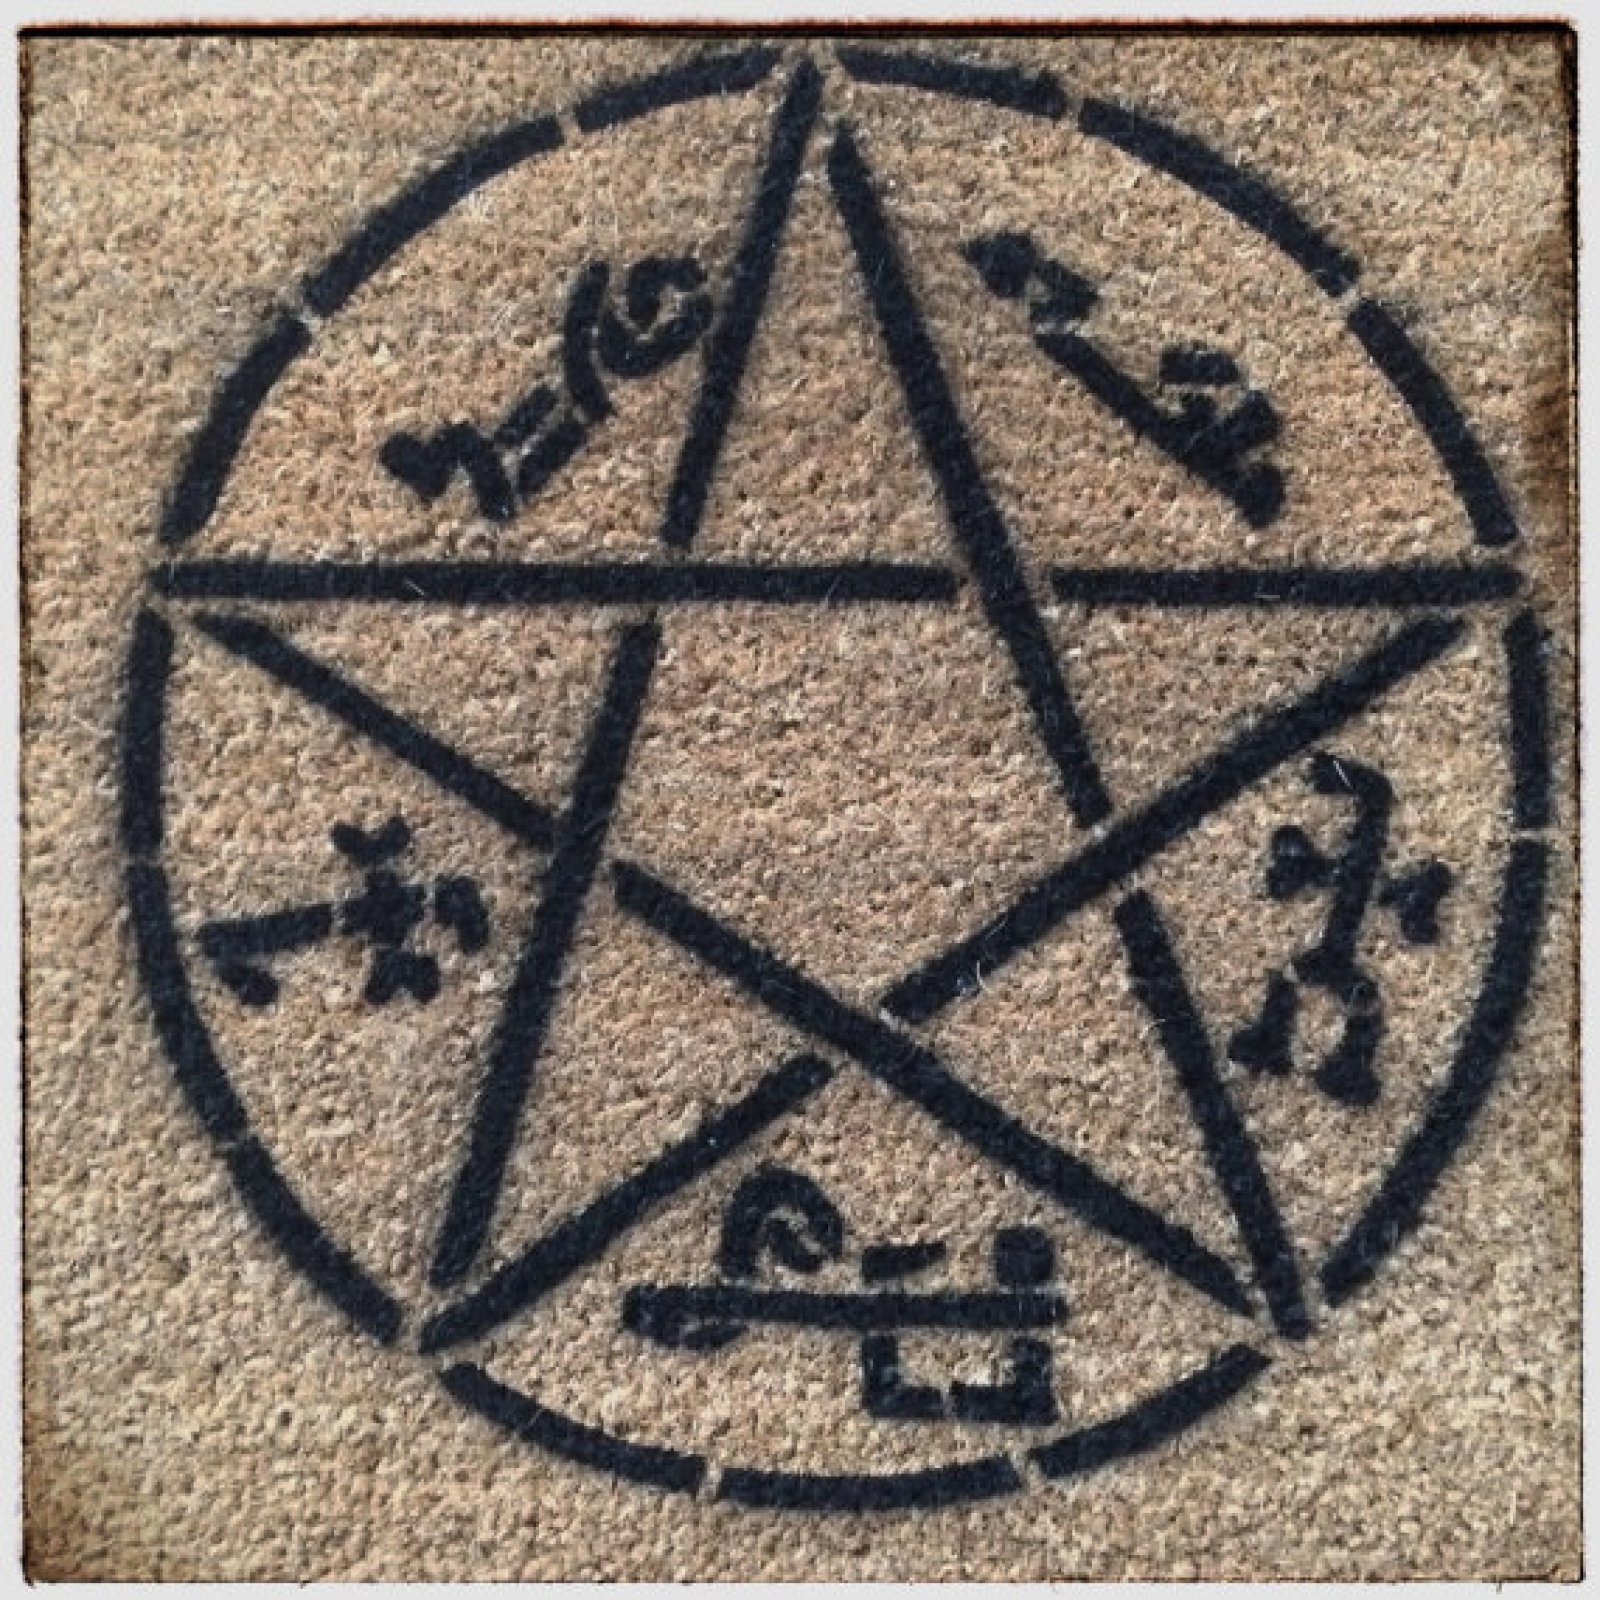 Devils Trap Supernatural Pentagram Doormat Black Arts